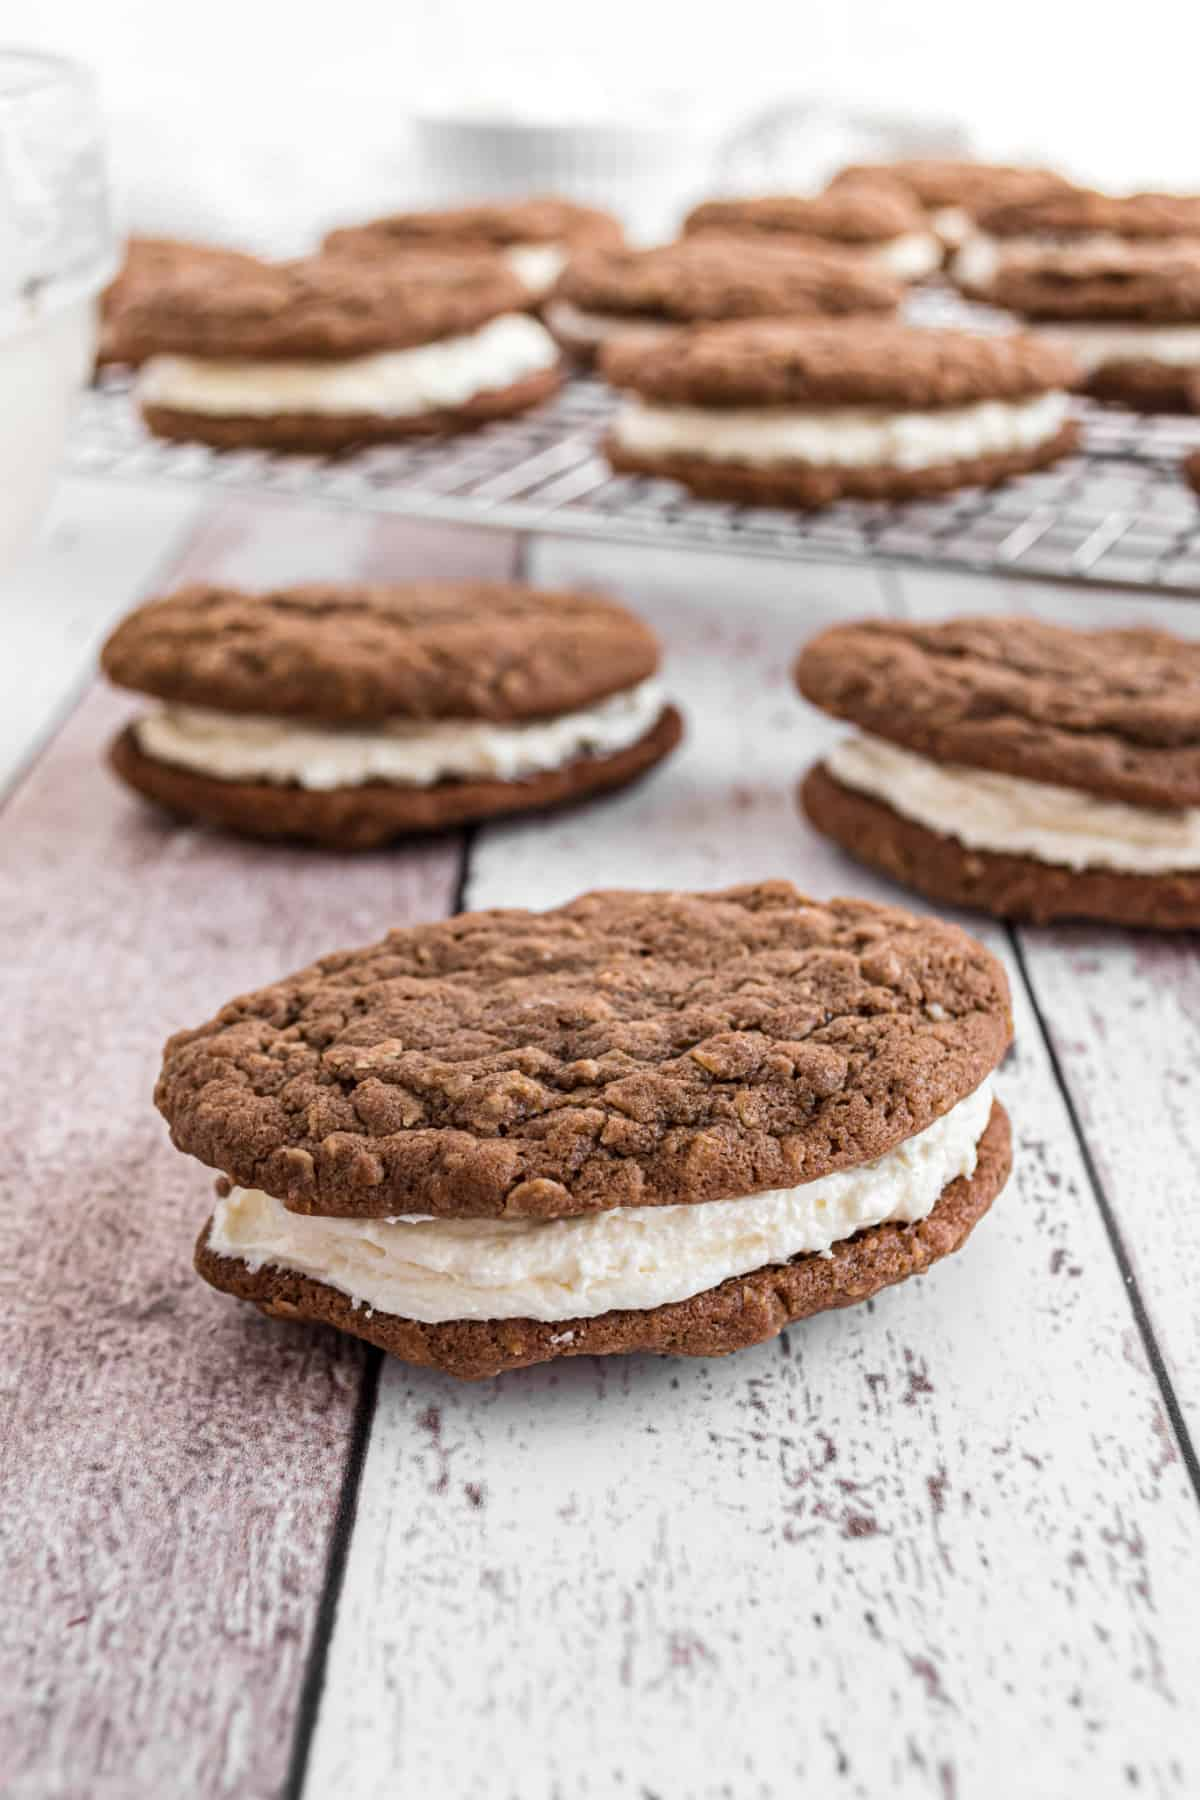 Chocolate oatmeal cream pie with filling on counter.